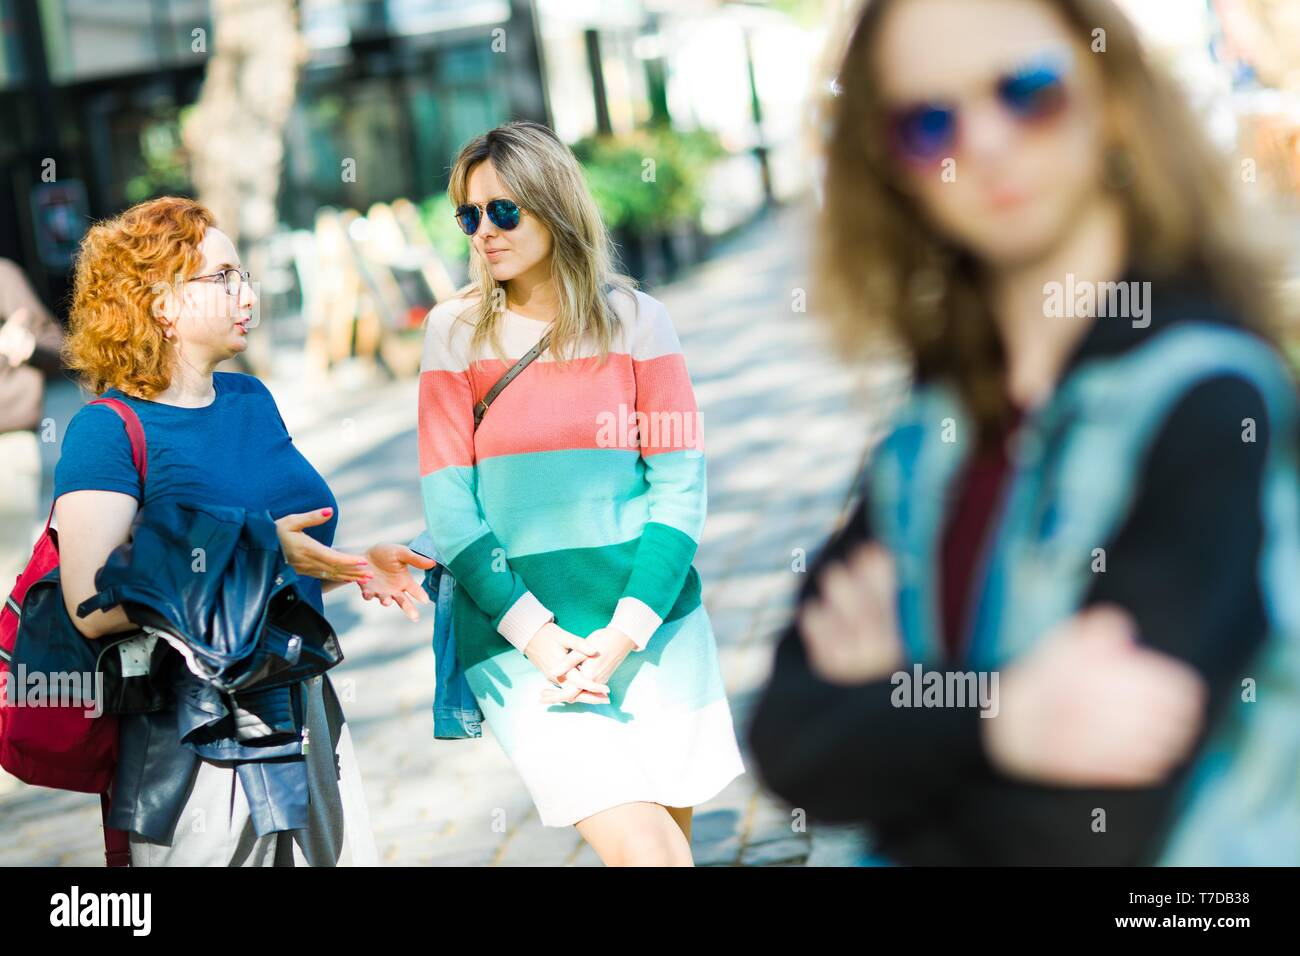 Two women in the city naturally chatting together, bored girl waiting in foreground. - Stock Image